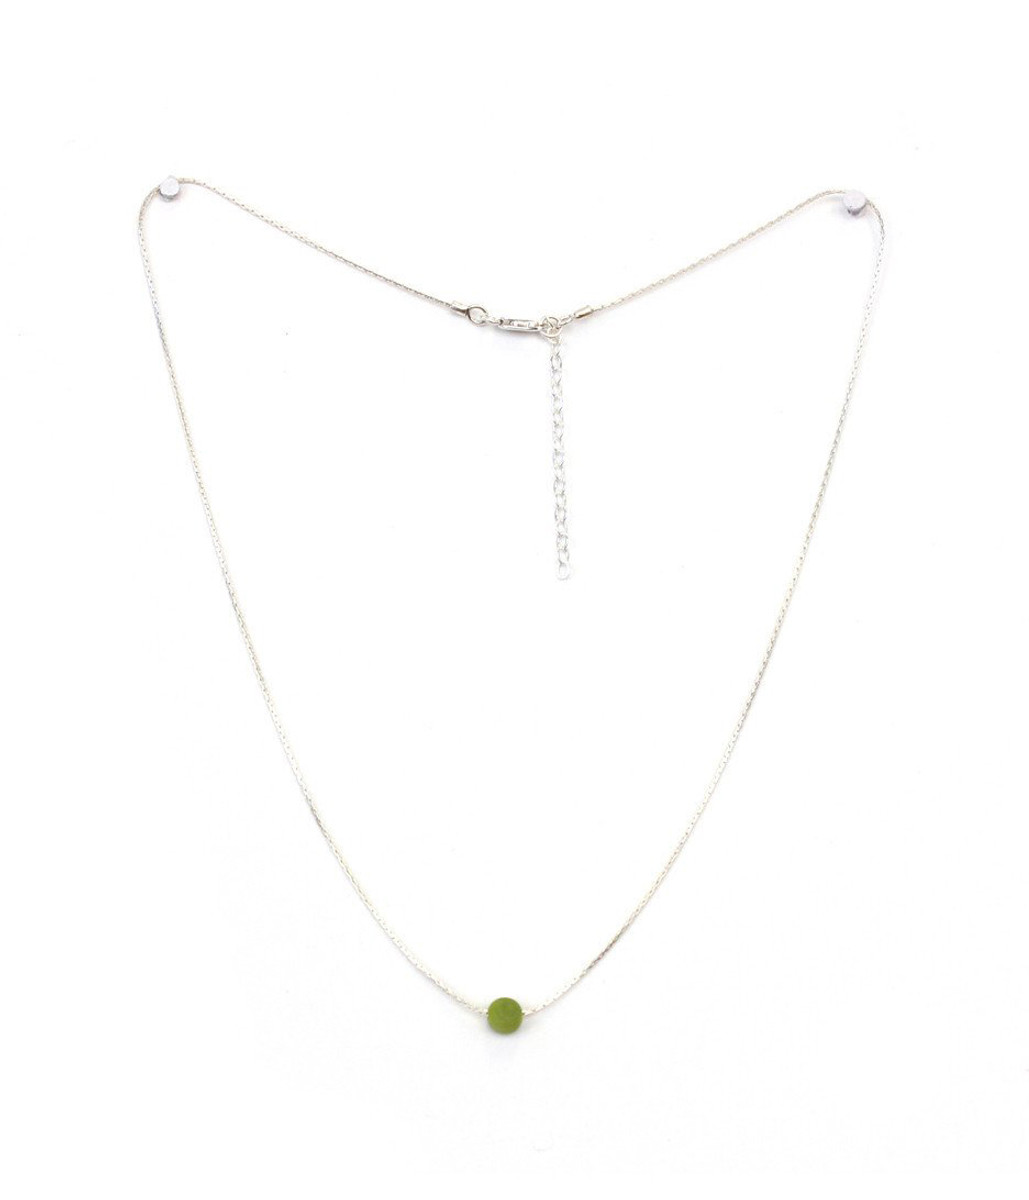 Prelude necklace from Encanto Jewelry - Multi Color